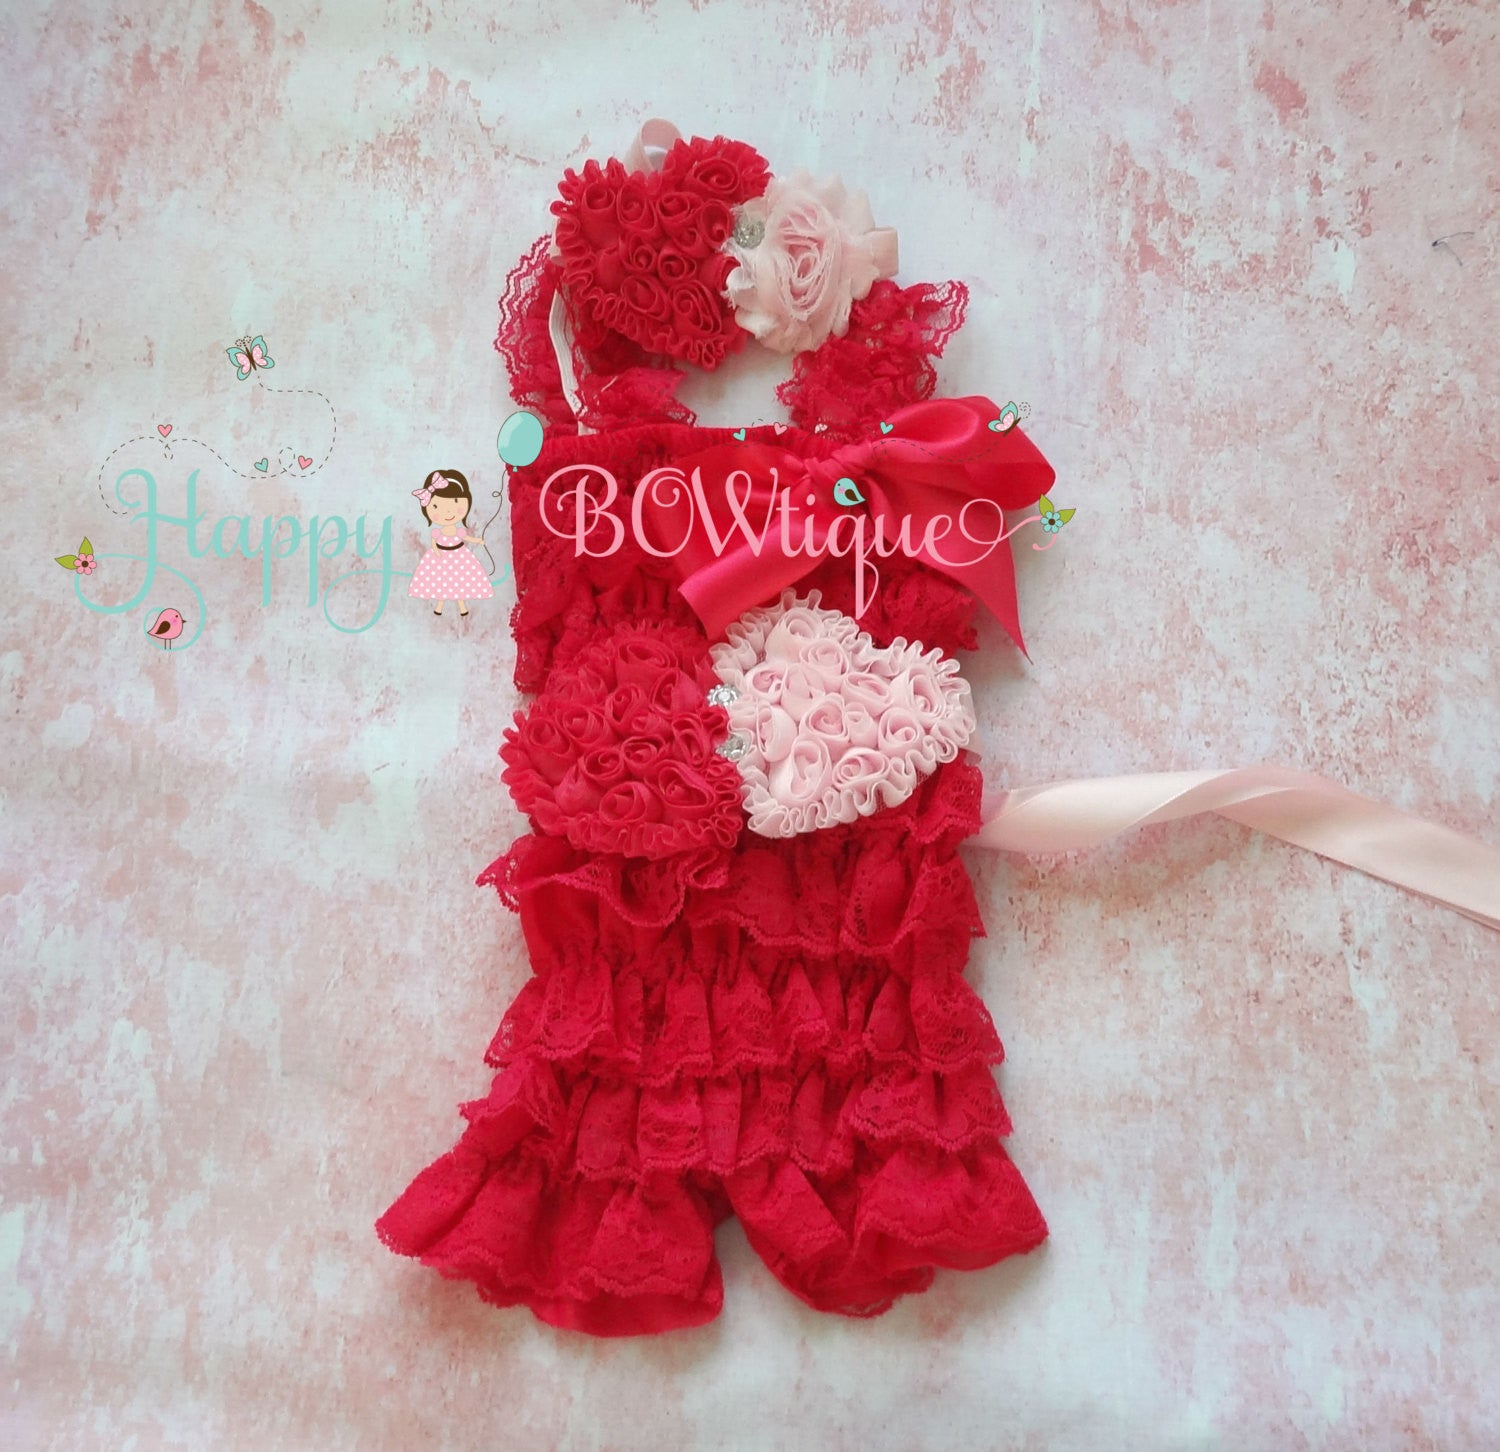 Hot Pink Heart Petti Lace Romper Set - Happy BOWtique - children's clothing, Baby Girl clothing